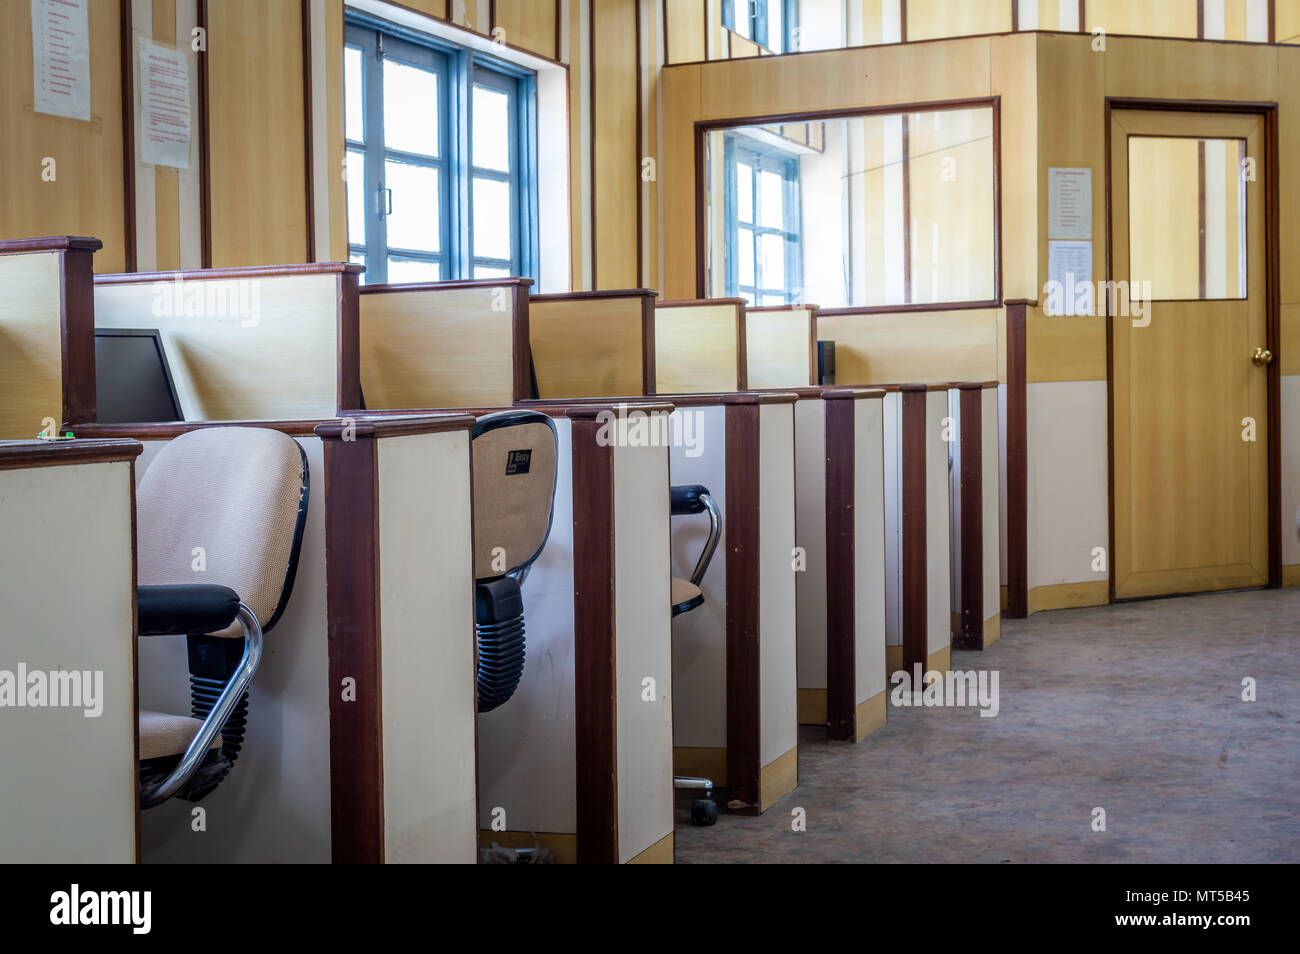 Small individual cabins with computers and chairs in an office - Stock Image